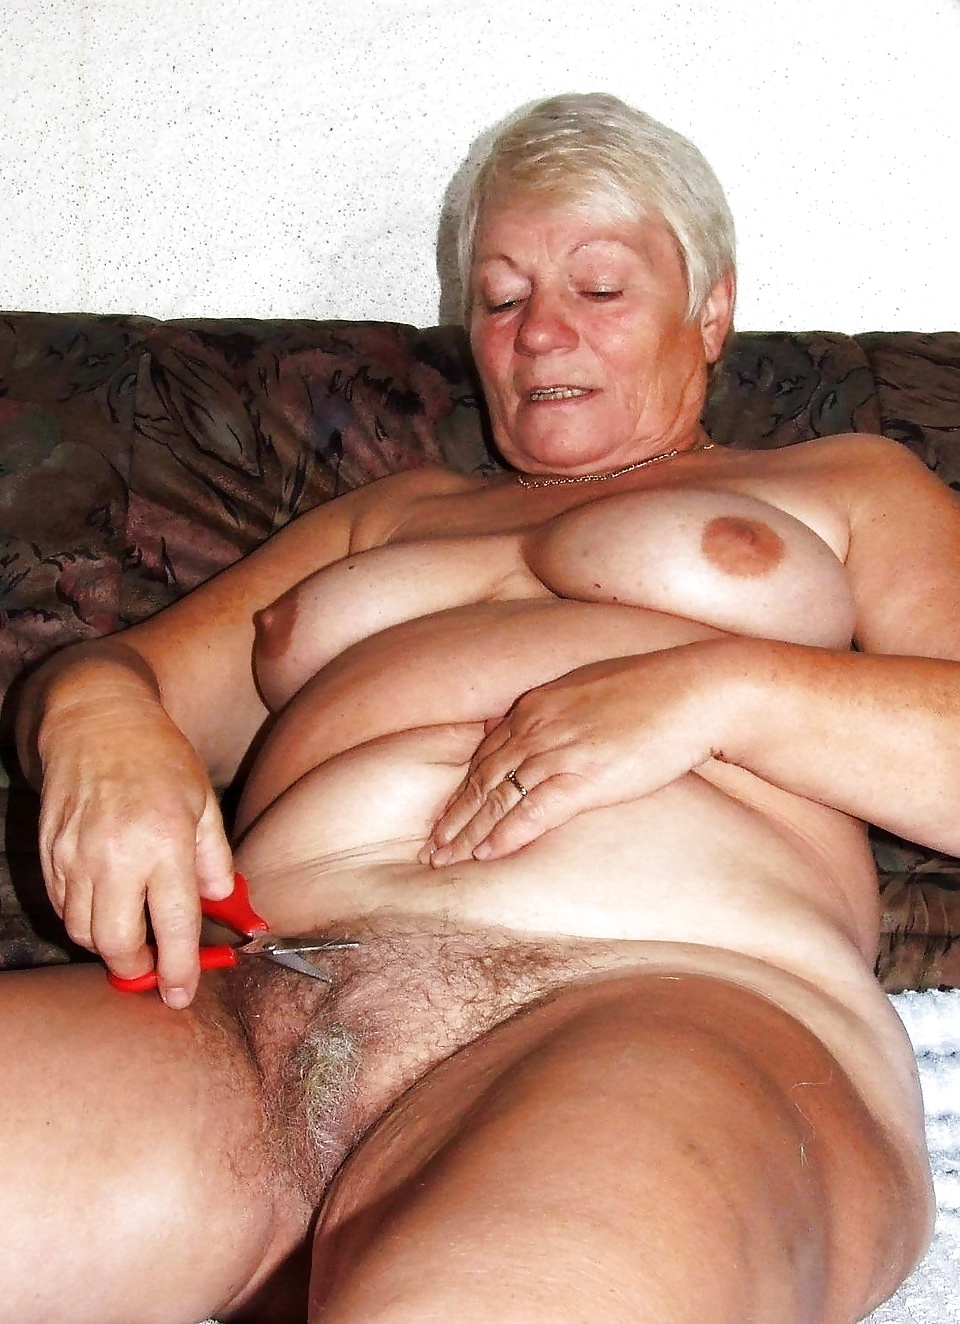 old-hairy-granny-porn-pictures-yellow-bone-pussy-tumblr